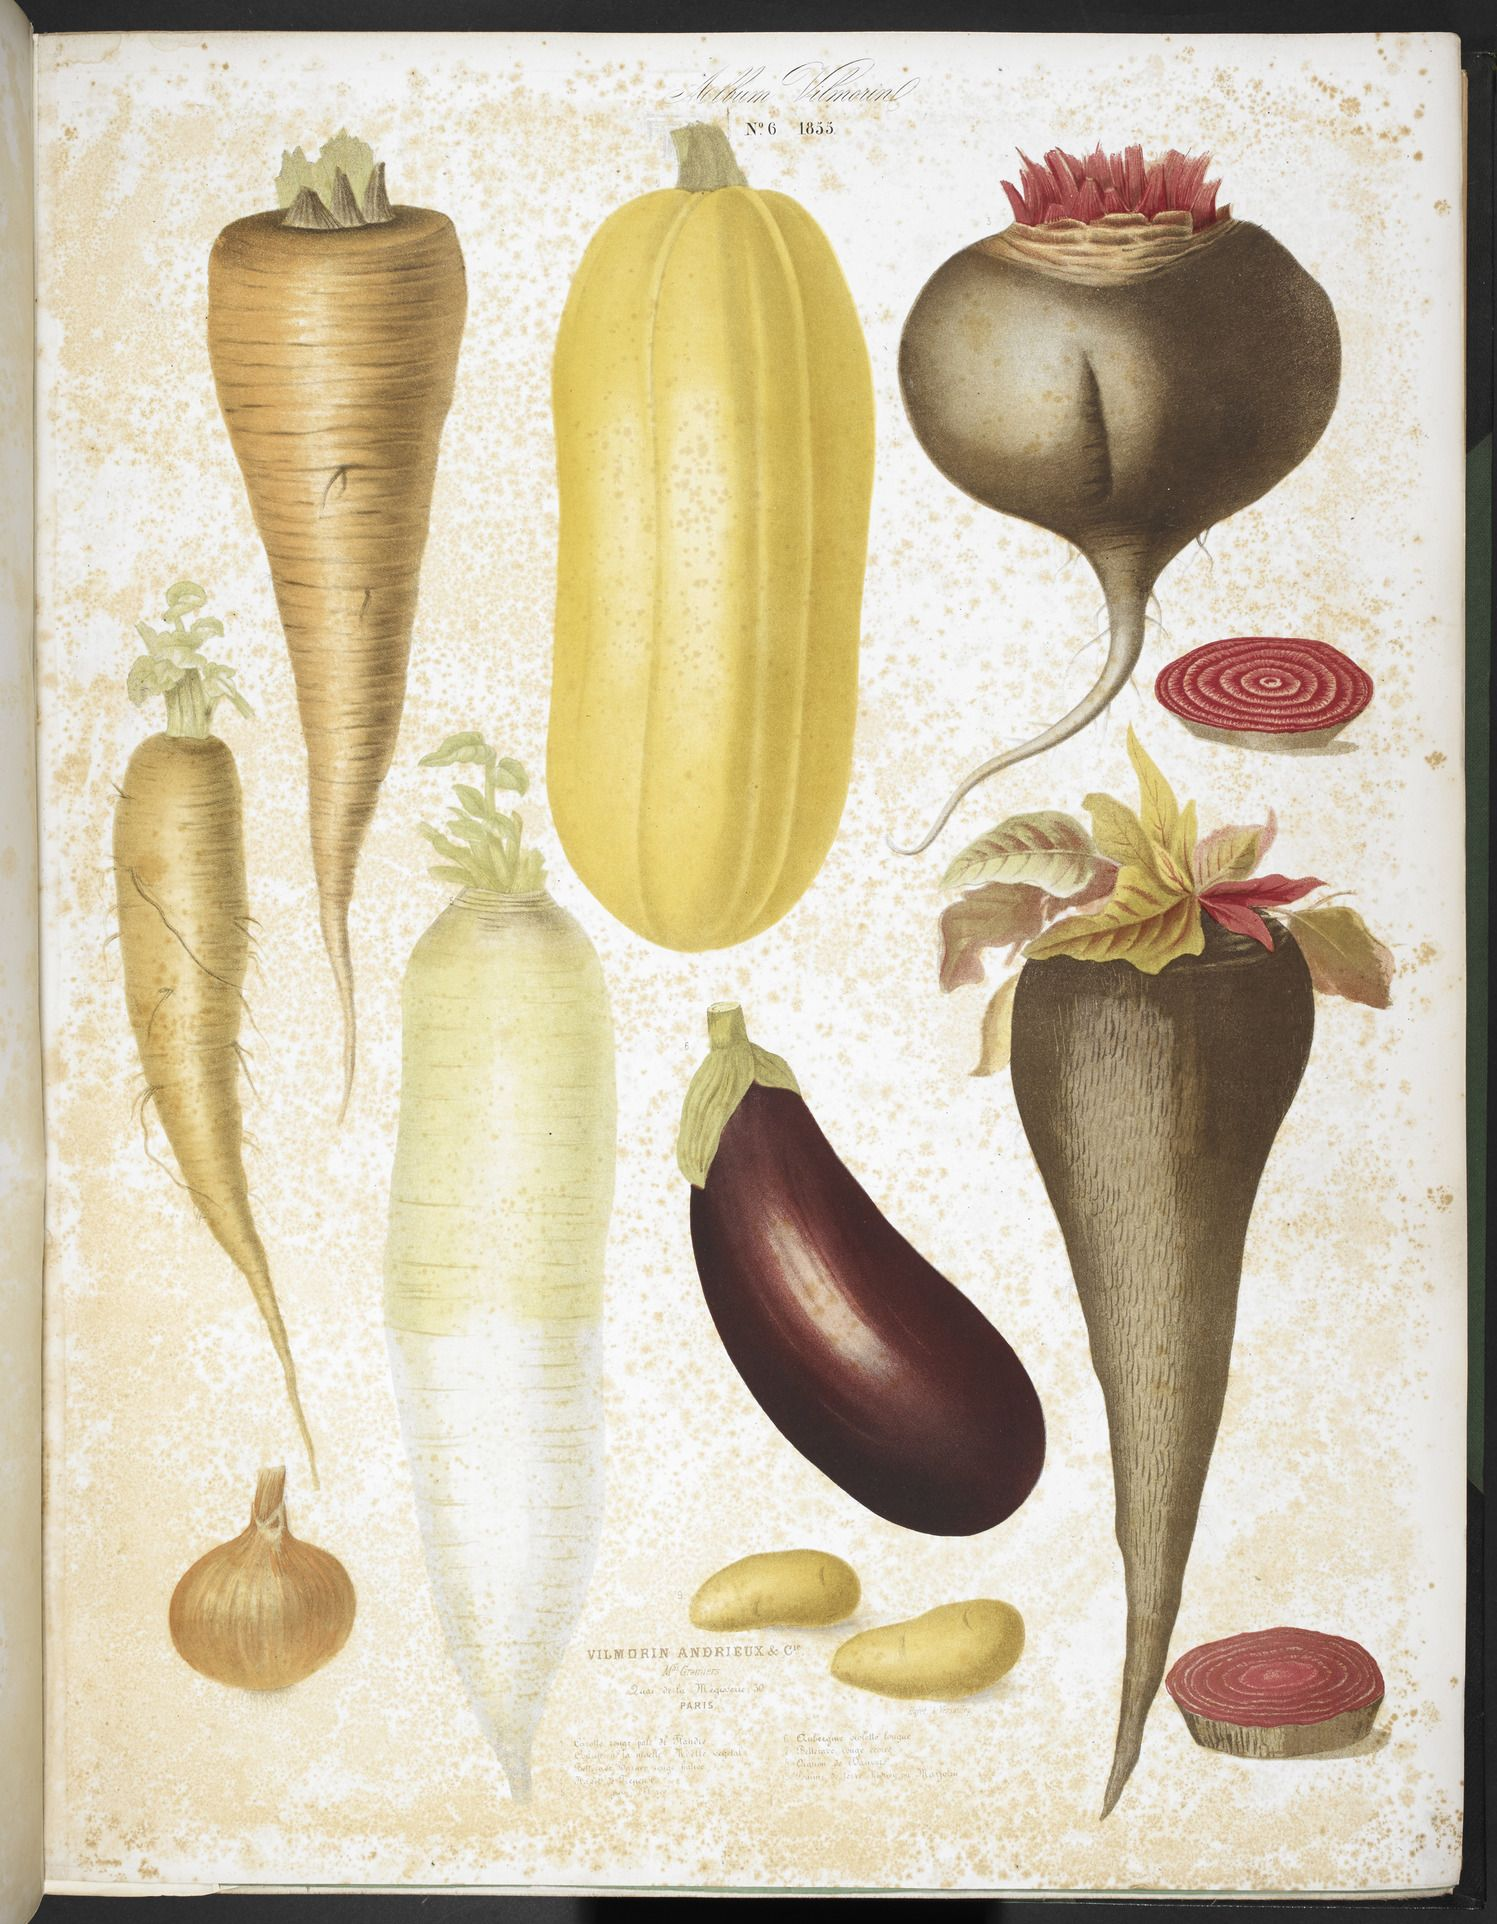 """Caption: """"A selection of vegetables, including aubergine, onion, carrot, and potato."""" Album Vilmorin: 68 Coloured plates of vegetables and flowers, printed by E. Champin and M. Coutance, Paris 1850."""